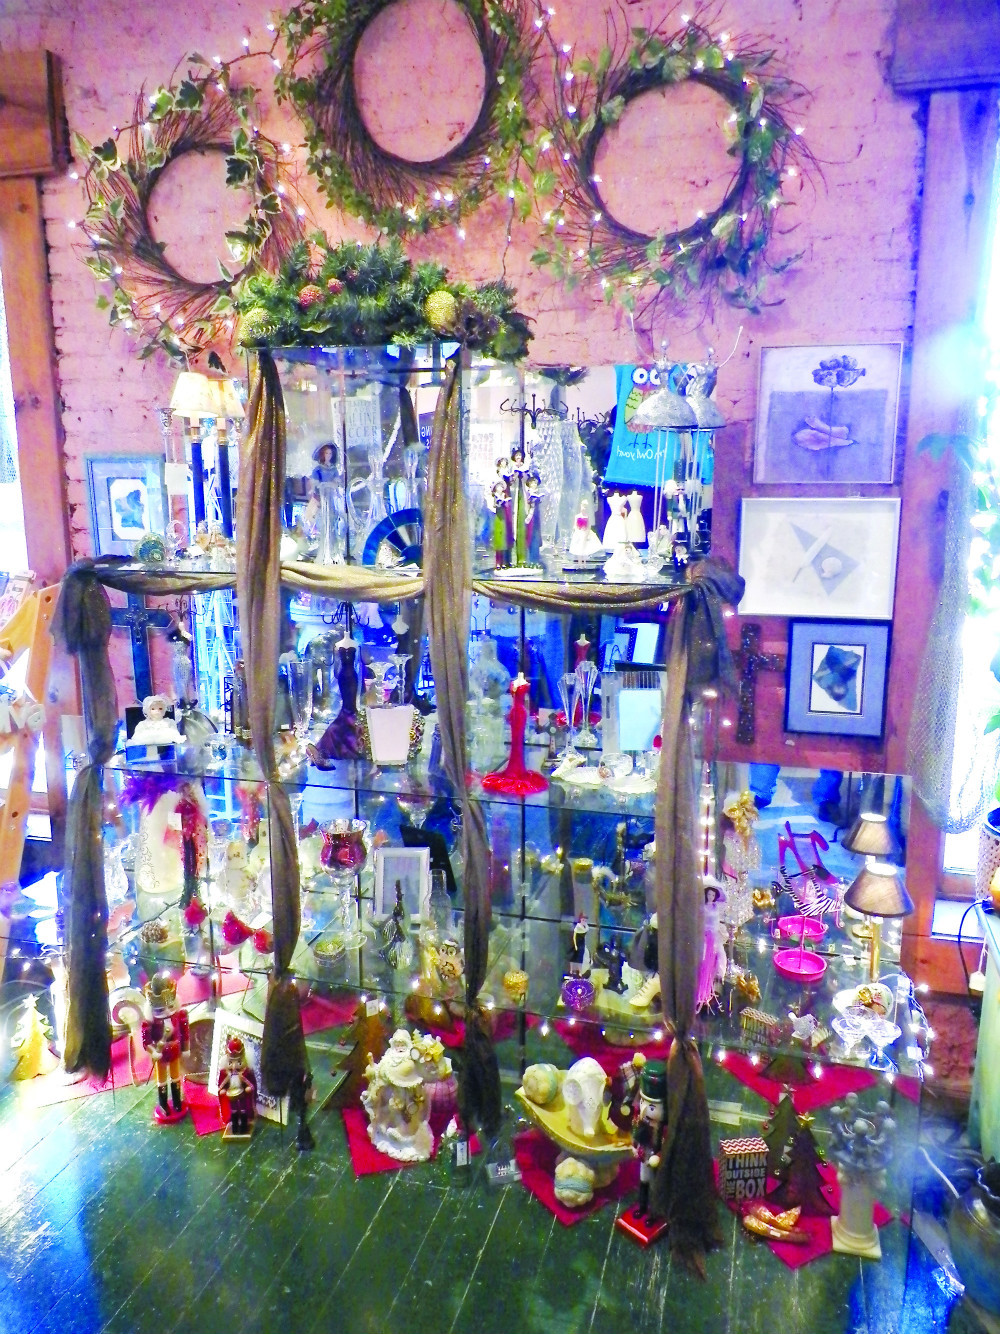 Vast variety of home decor available in Lincoln